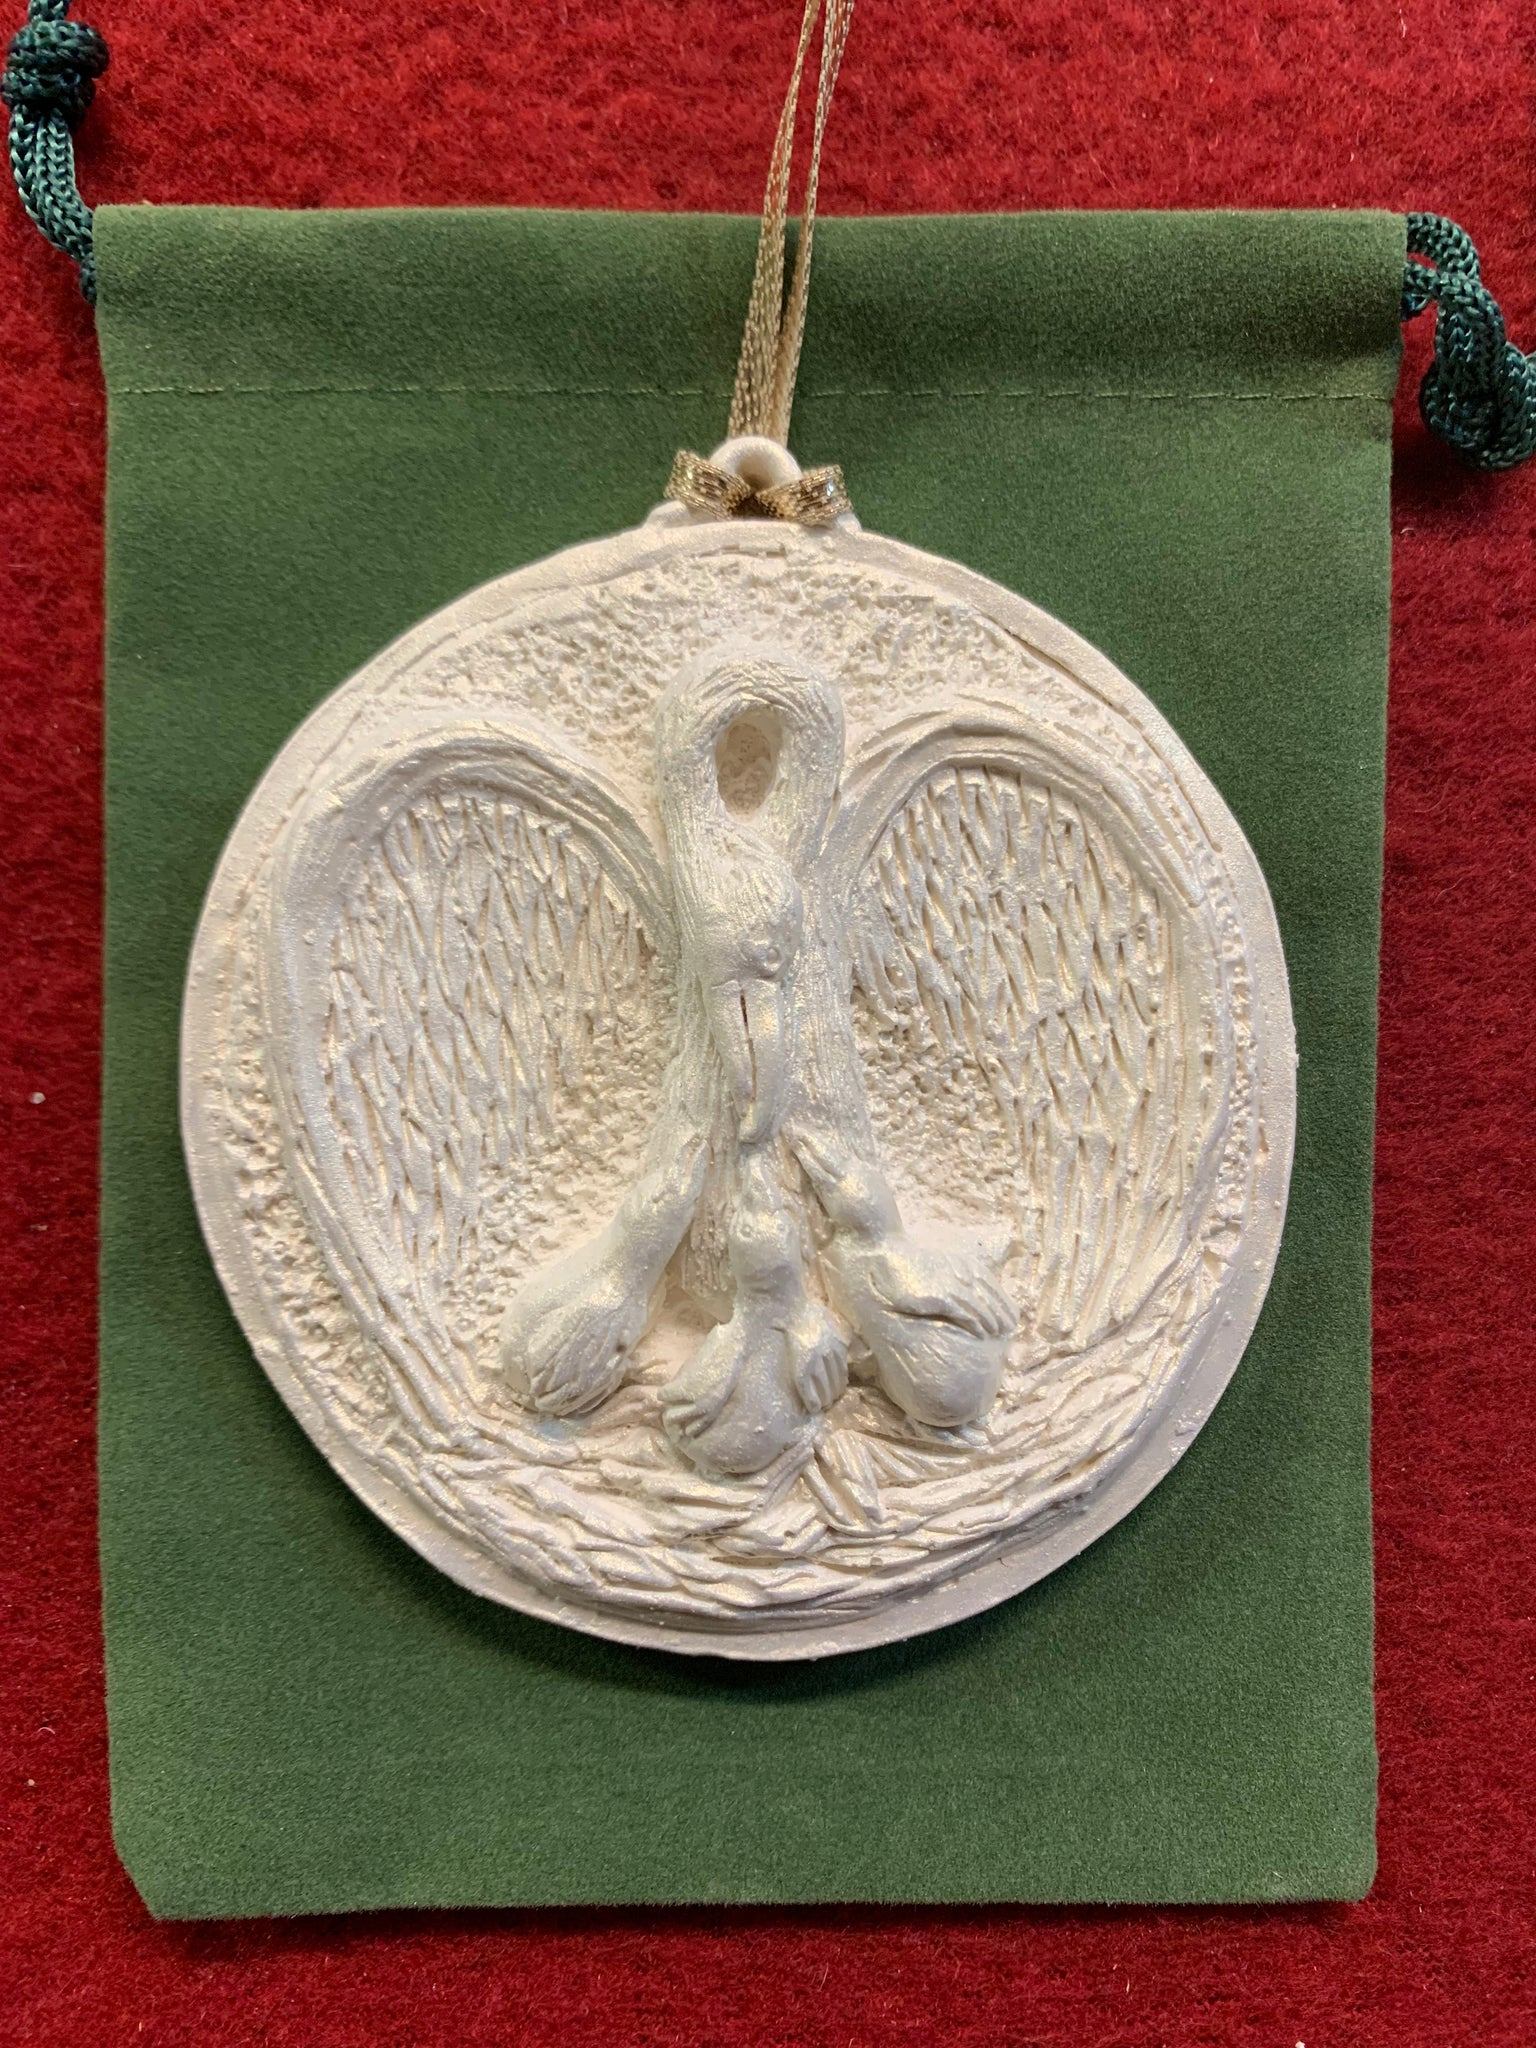 *NEW* 2019 Iridescent Pelican Ornament